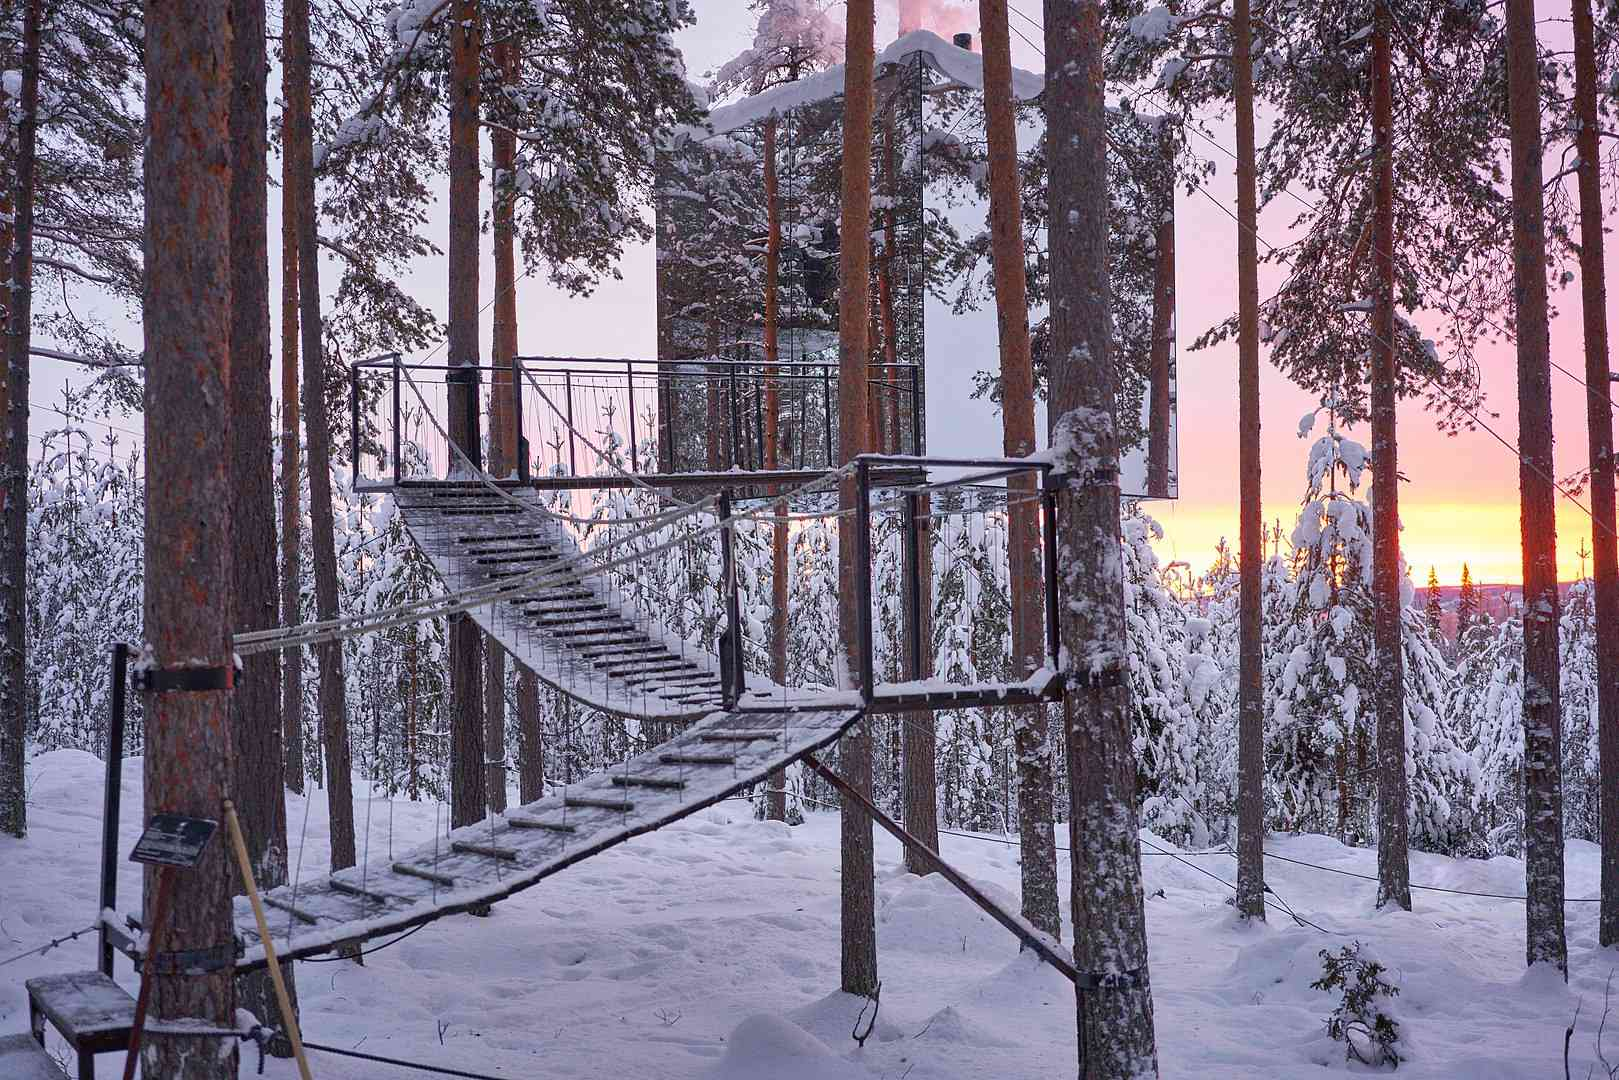 Reflective Treehotel Mirrorcube treehouse suspended in trees in forest